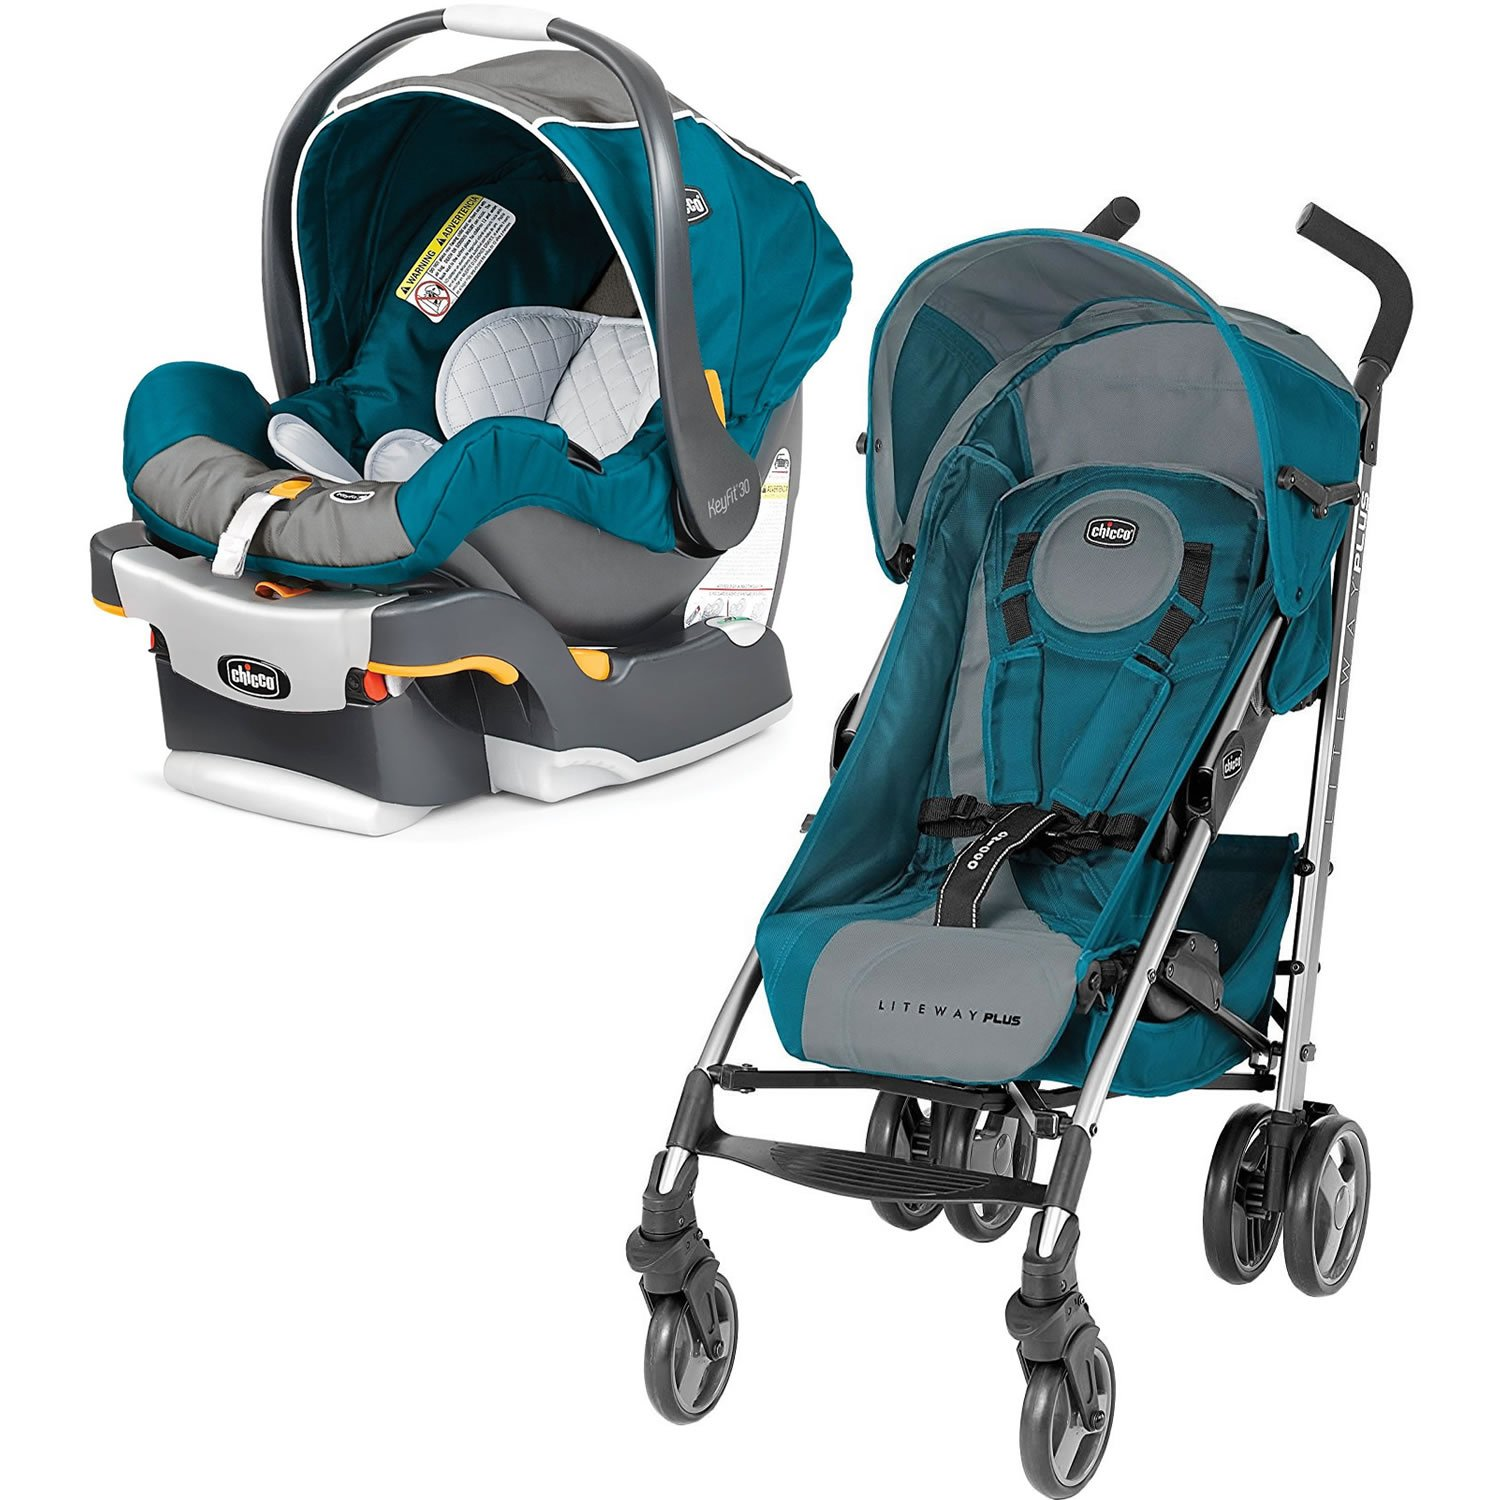 Amazon Chicco Liteway Plus Stroller Polaris With KeyFit 30 Infant Car Seat Polaris Baby